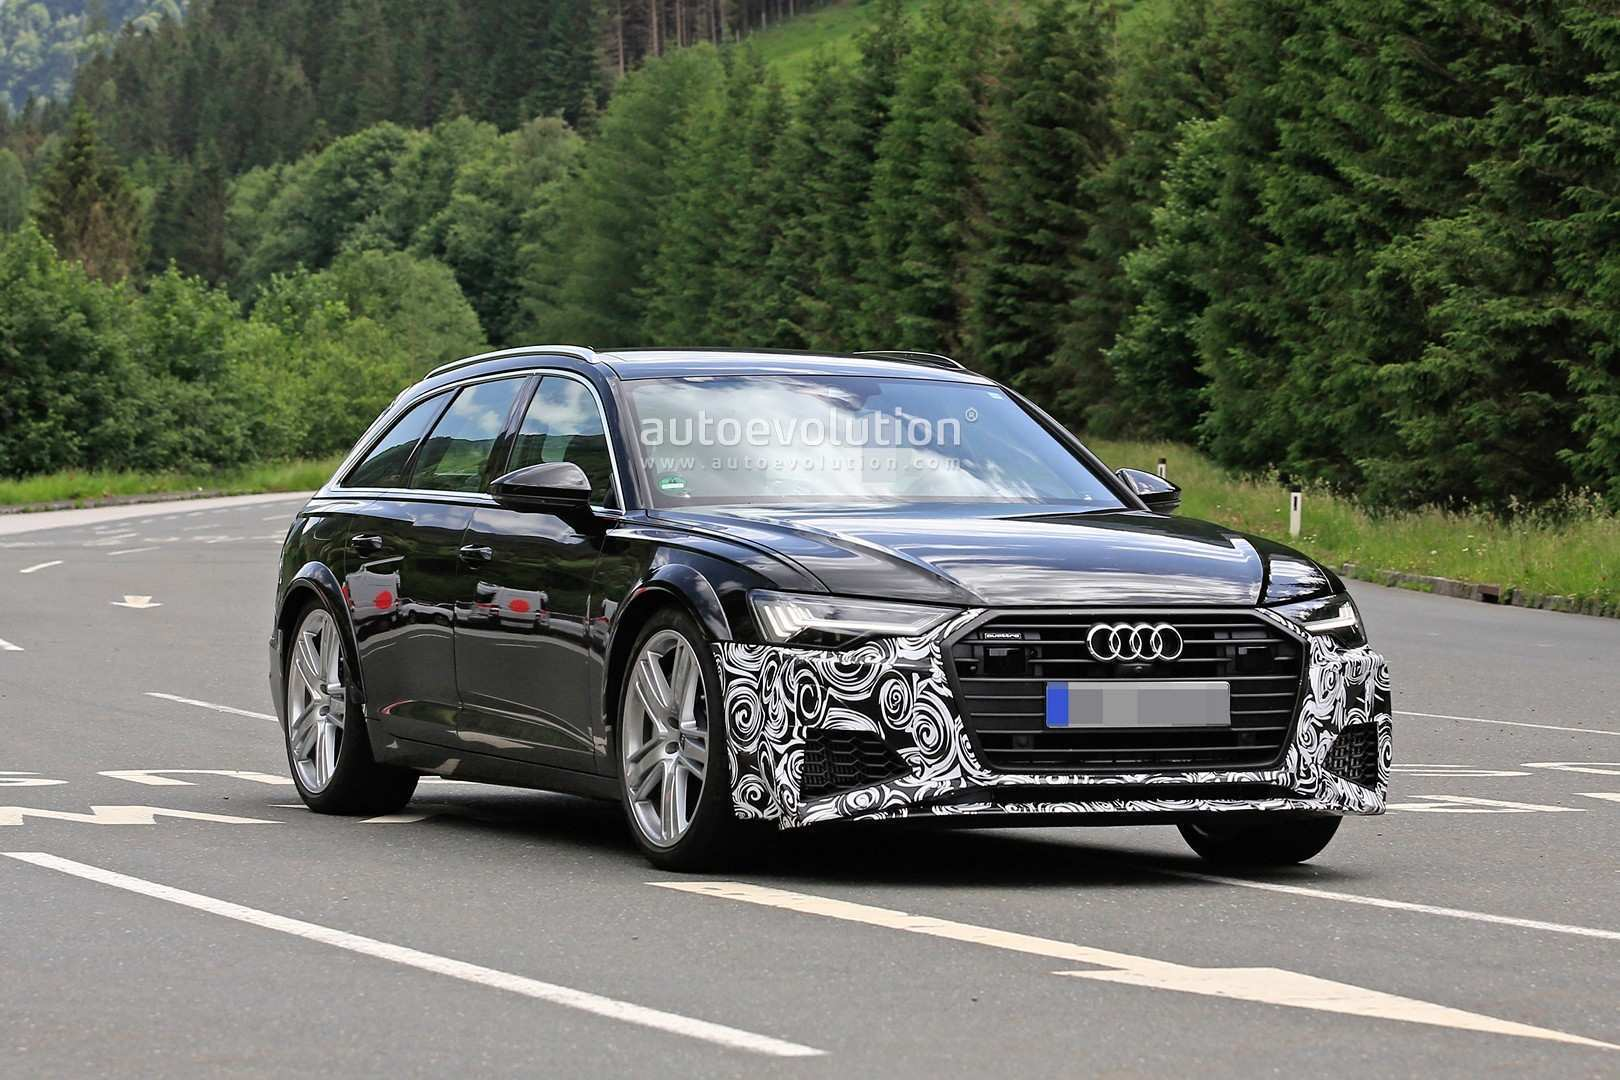 82 Best Review Audi News 2020 New Review with Audi News 2020